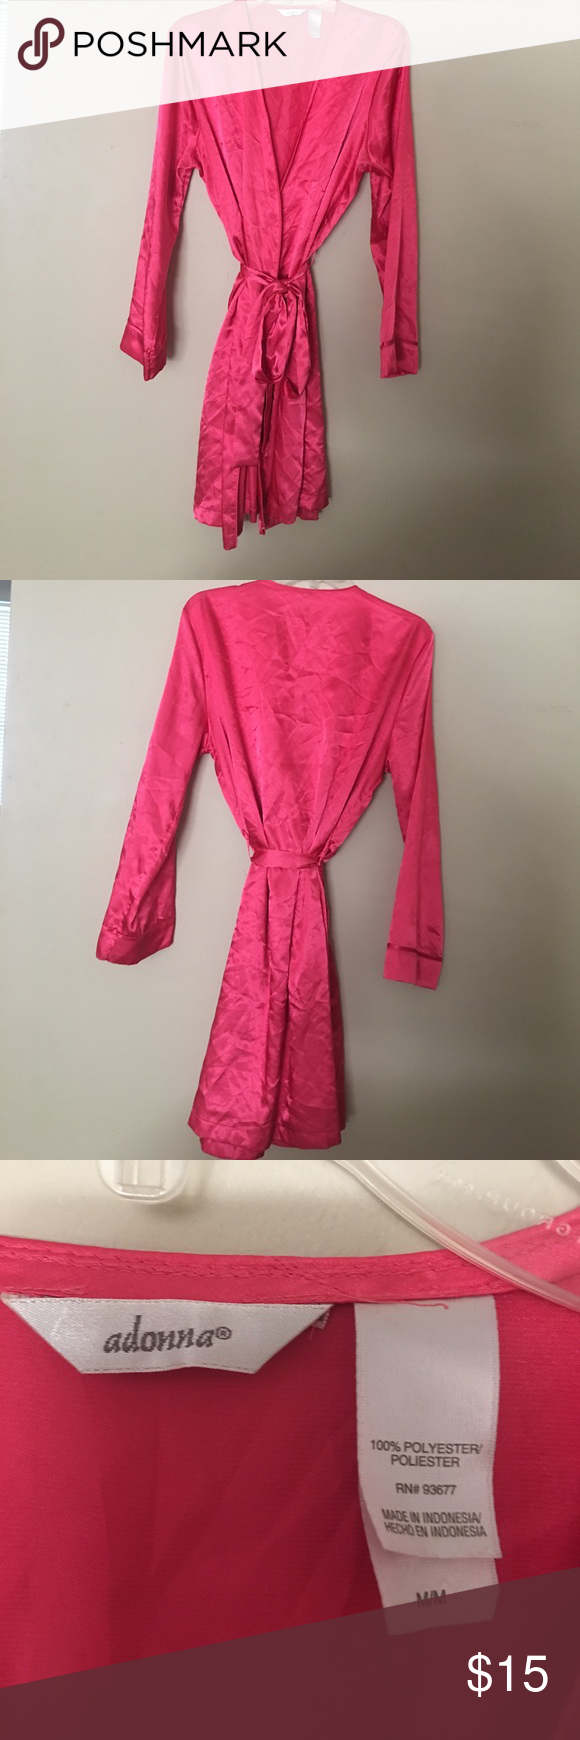 Hot pink robe Silky hot pink robe! Can be steamed before shipping! Adonna Intimates & Sleepwear Robes